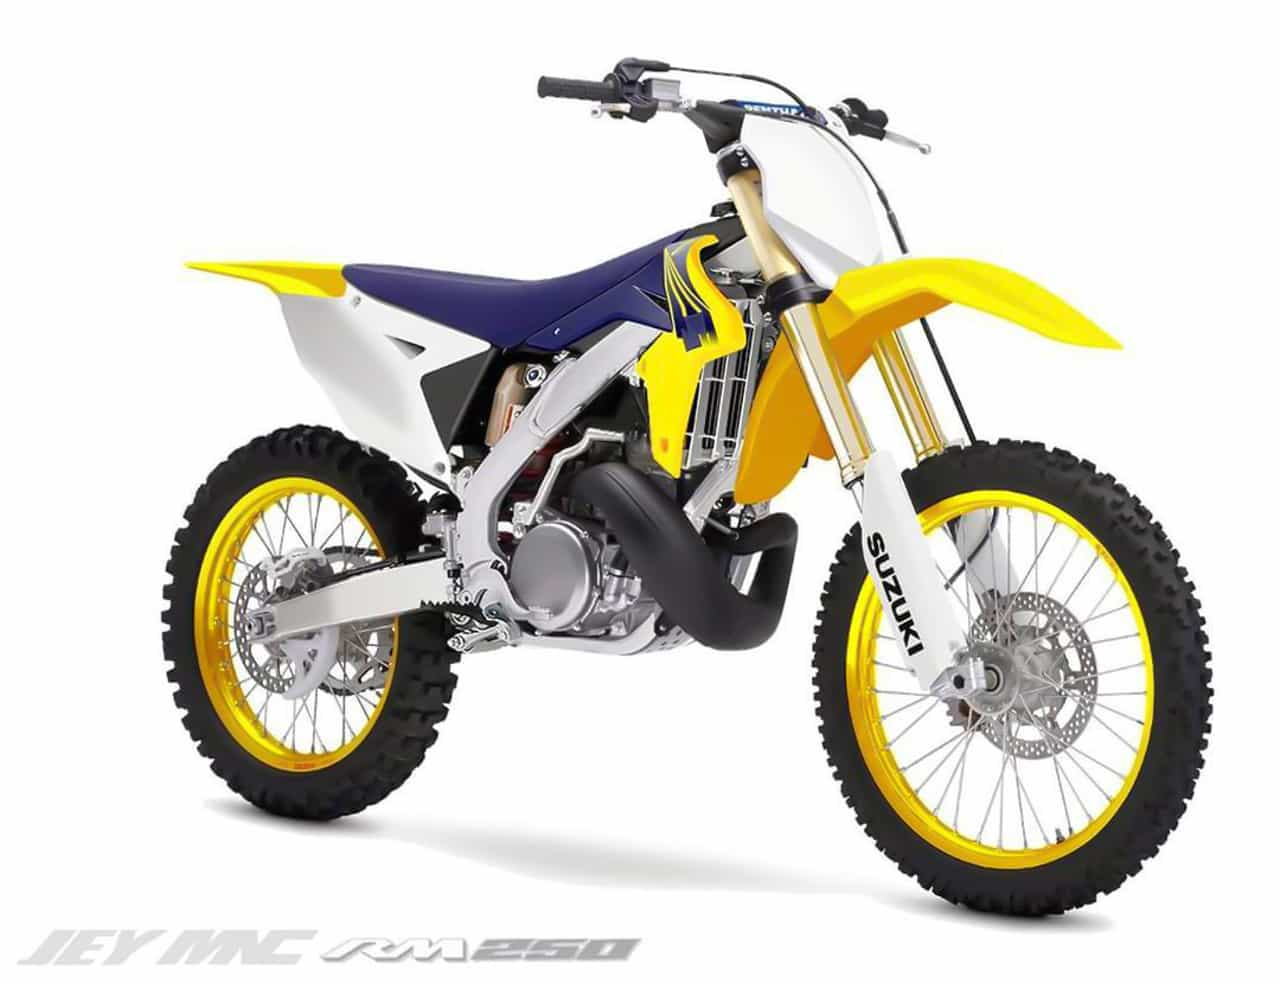 TWO-STROKE TUESDAY: CONCEPT BIKES THAT WILL NEVER BE ...